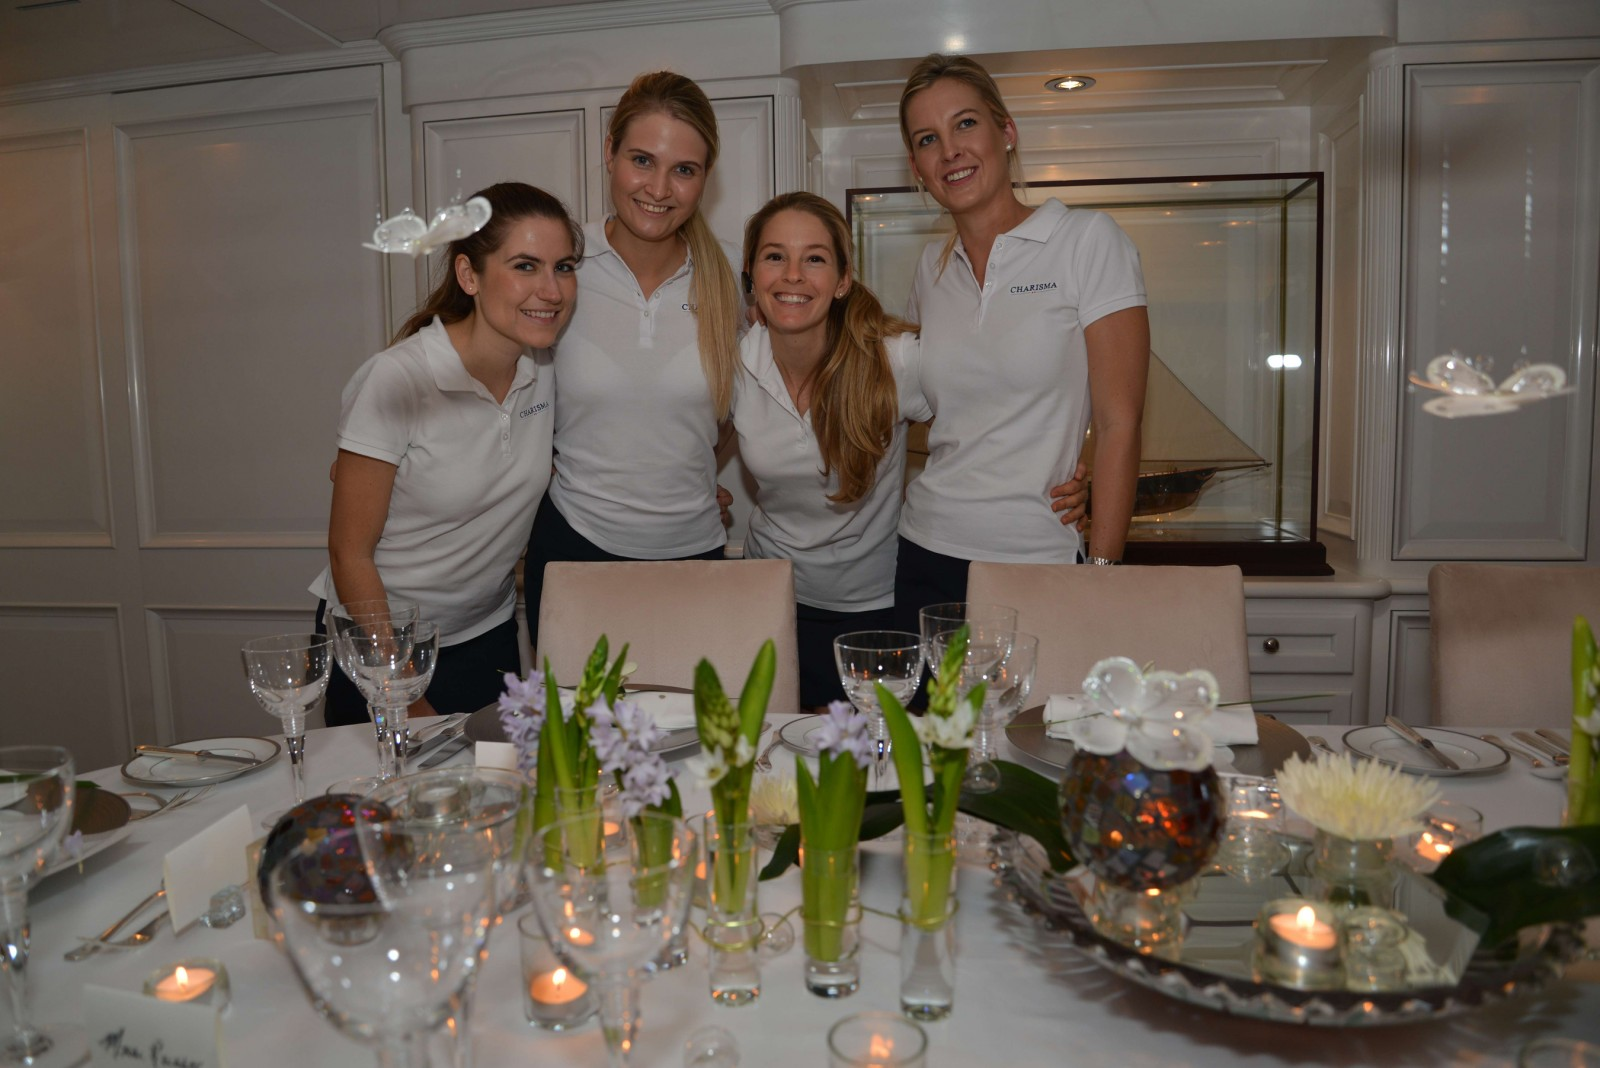 M/Y Charisma – The crew dreamed up a fantasy setting with flowers that show a transformation from caterpillar to butterfly, that appear to be flying over the table. Crew includes Stew Carmen Milton, Stew Kirsty Britz, Chief Stew Karine Lantra and Stew Michelle Adams.